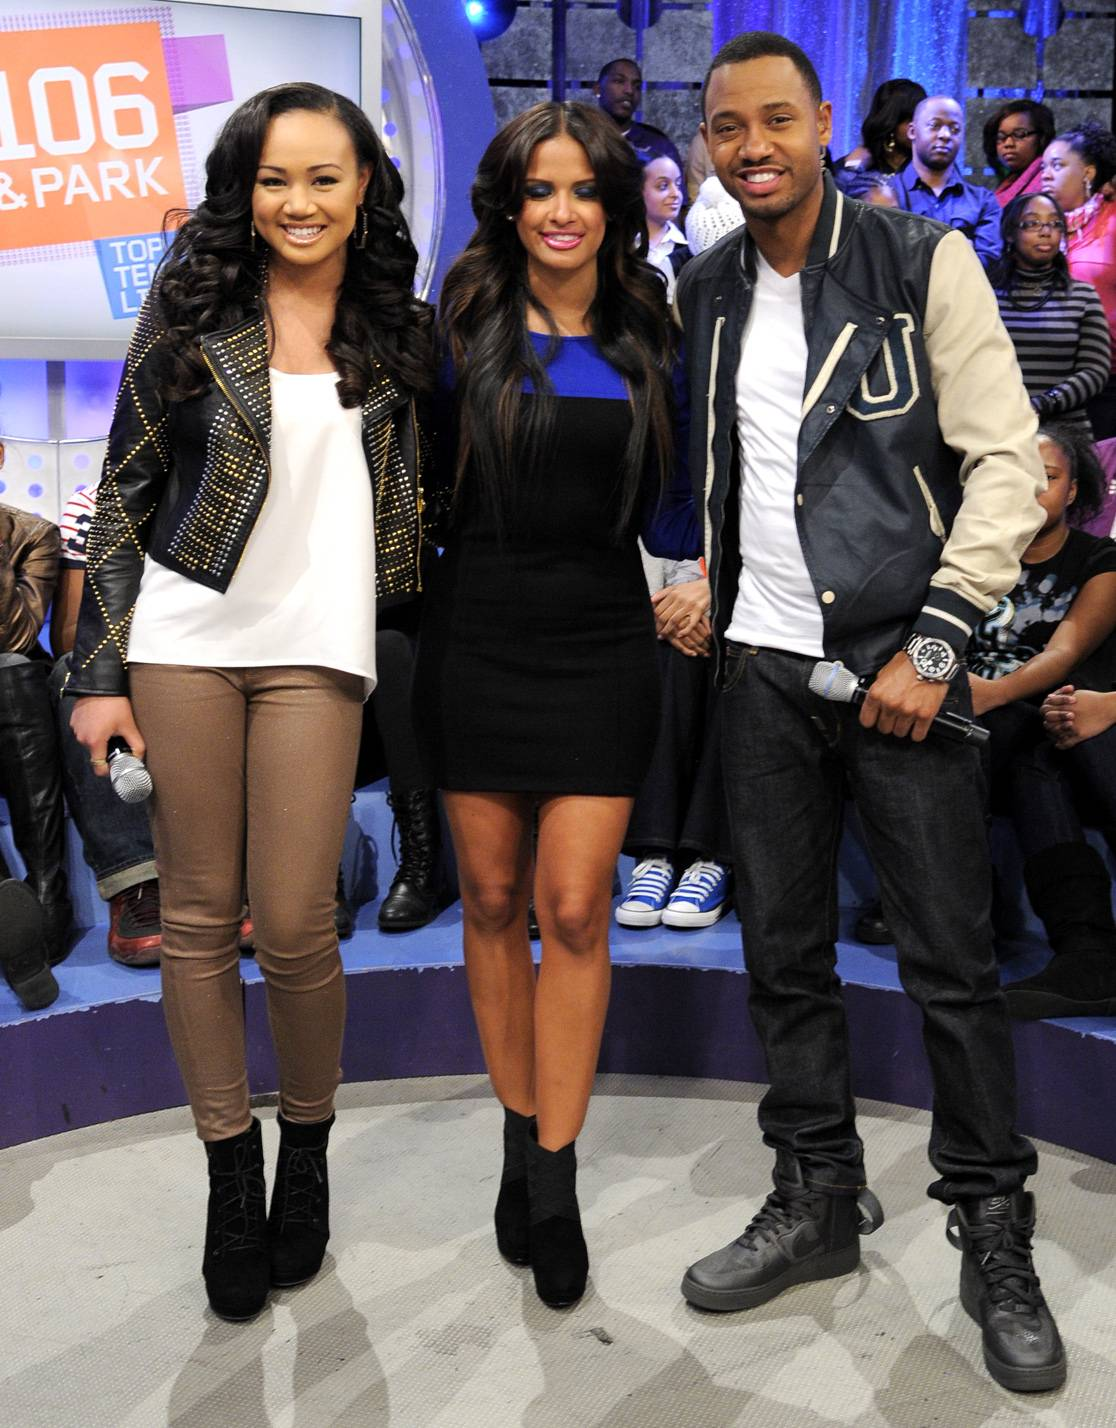 Talented - Cymphonique with Terrence J and Rocsi Diaz at 106 & Park, January 05, 2012.(Photo: John Ricard/BET)